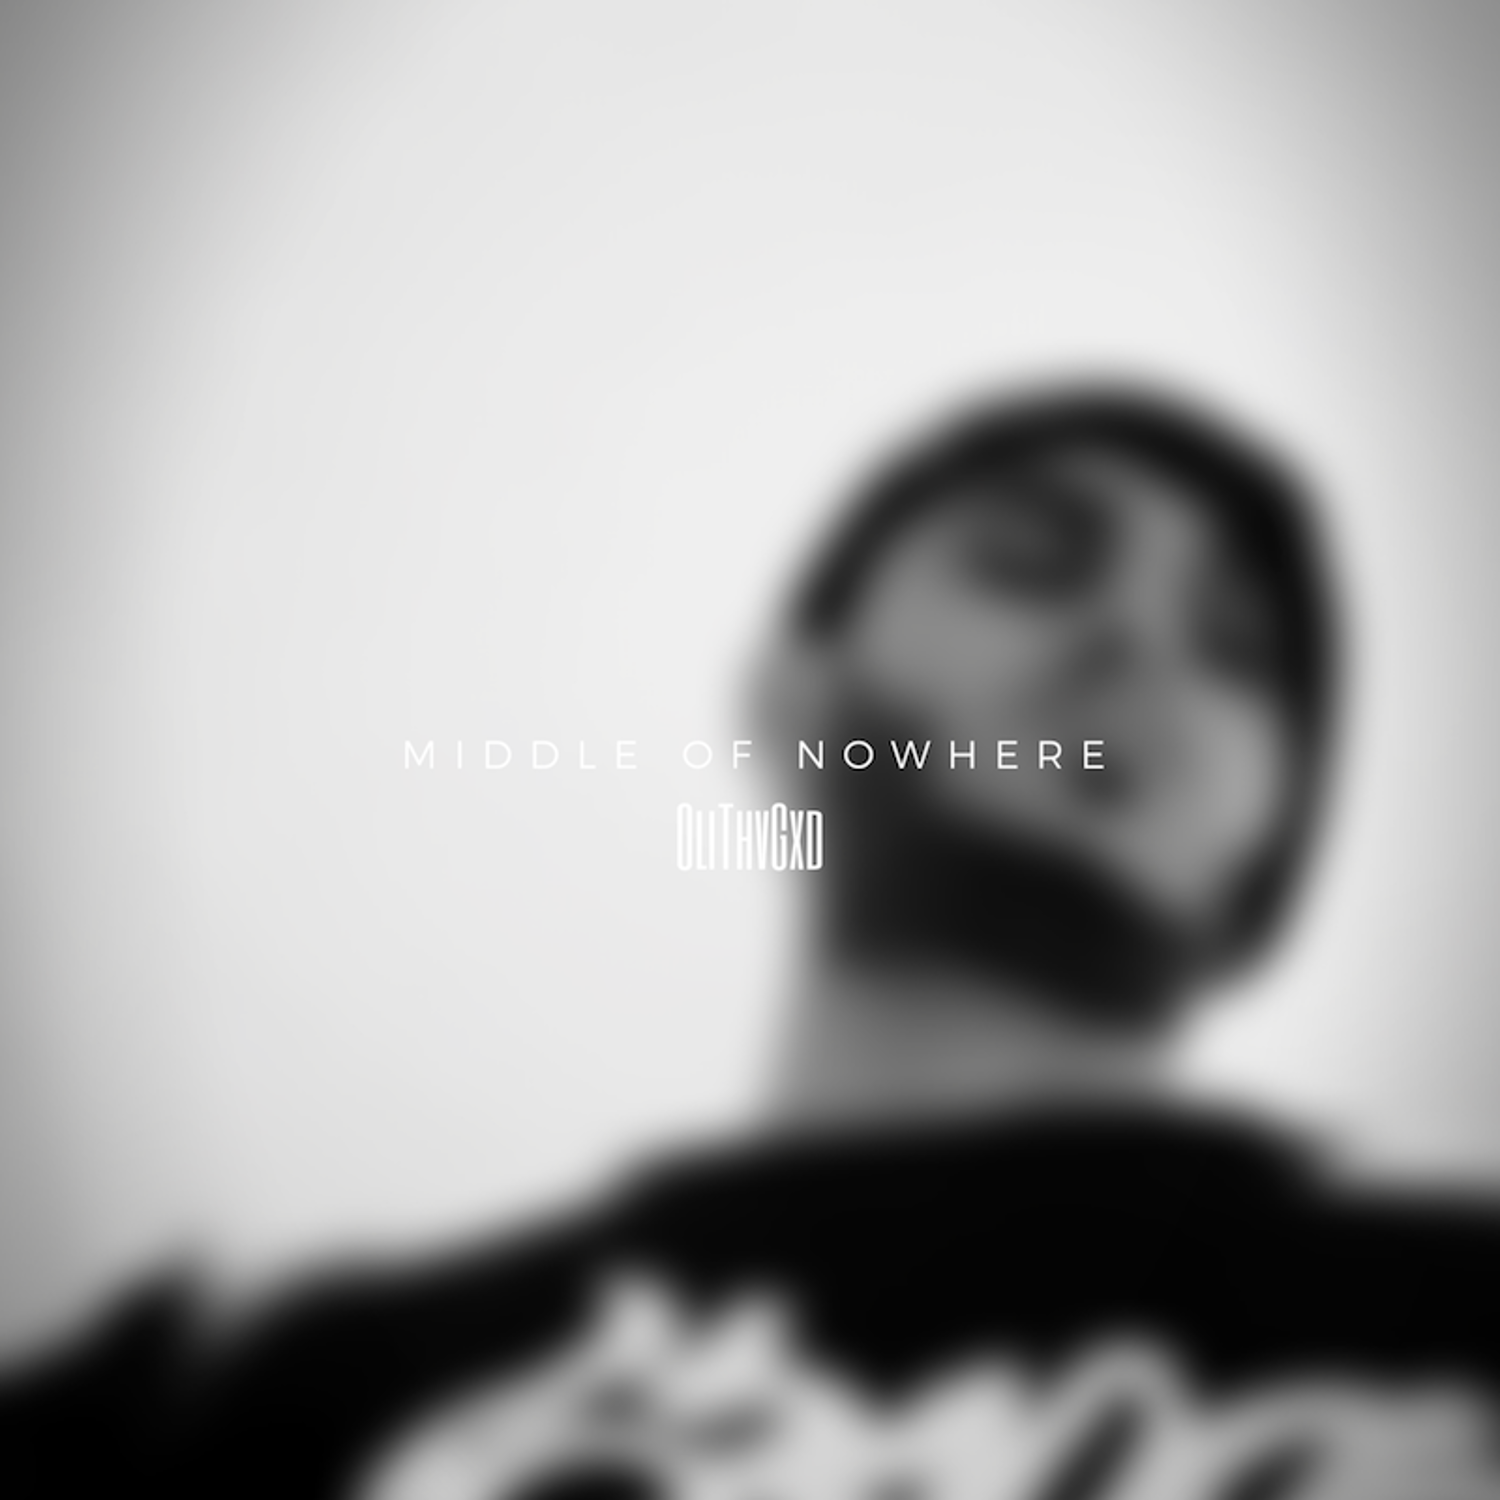 """""""Middle of NowHere"""" Mixtape   1.Facetime Freestyle  2.Q'd Up  3.Stars Above  4.Blvnt  5.The Type (Alway$)  6.Lvl Up    DOWNLOAD (192 Kbps)"""